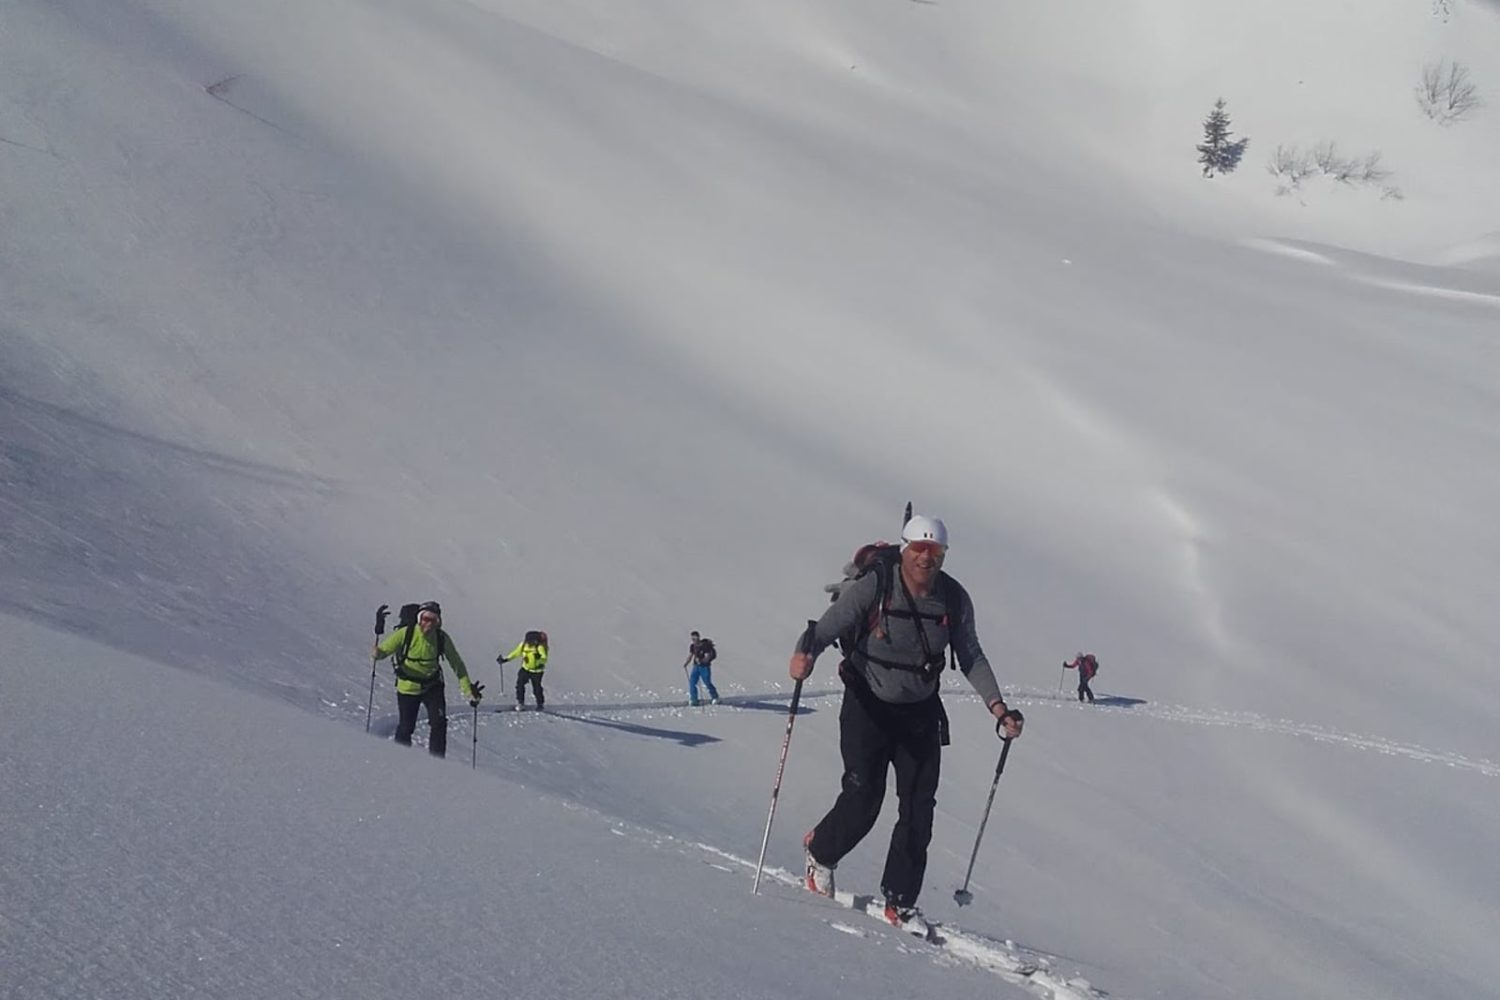 Ski touring from Bled